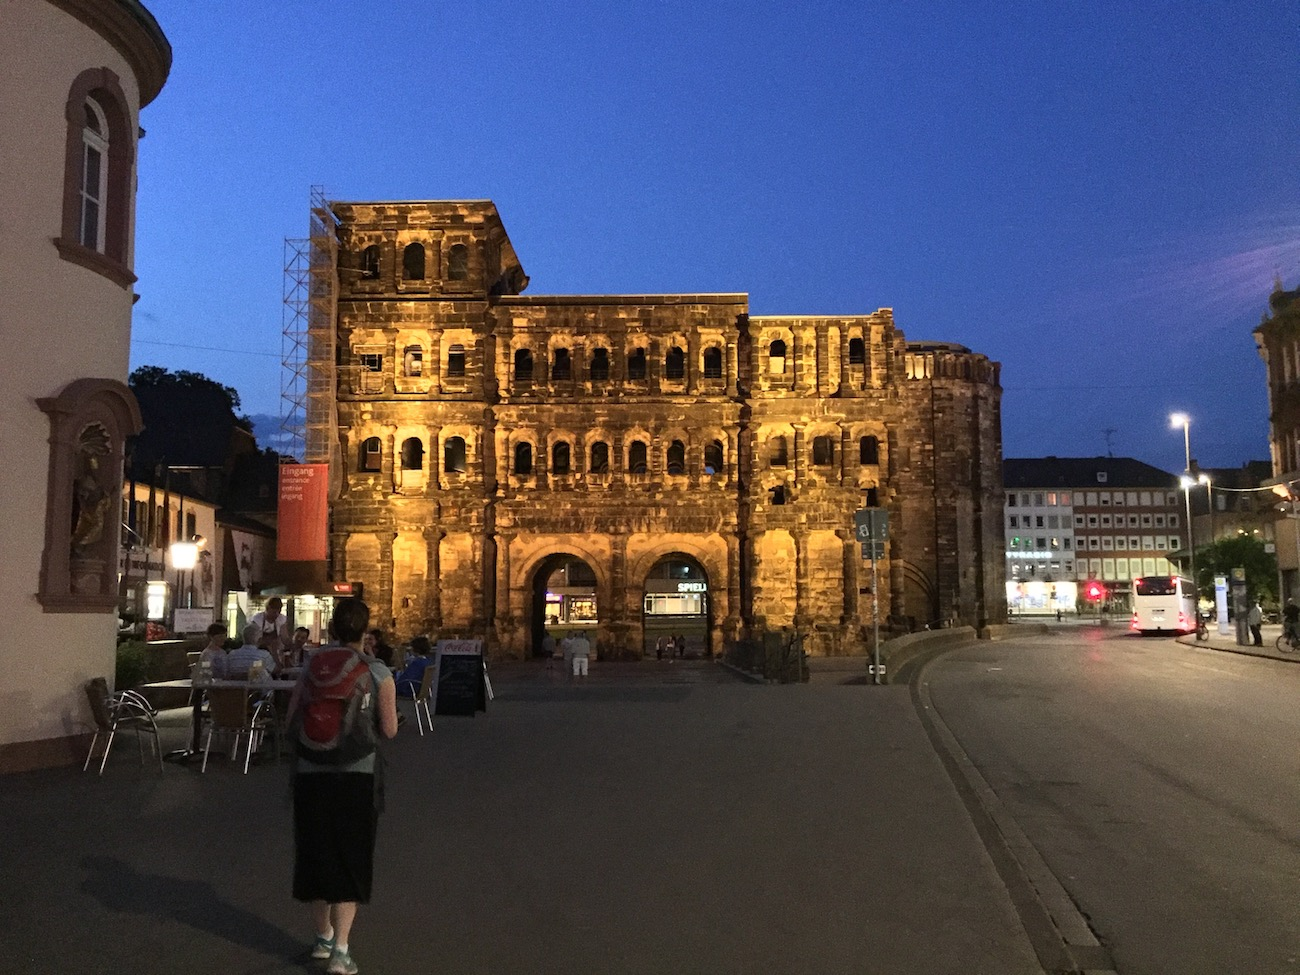 ... and the Porta Nigra at night